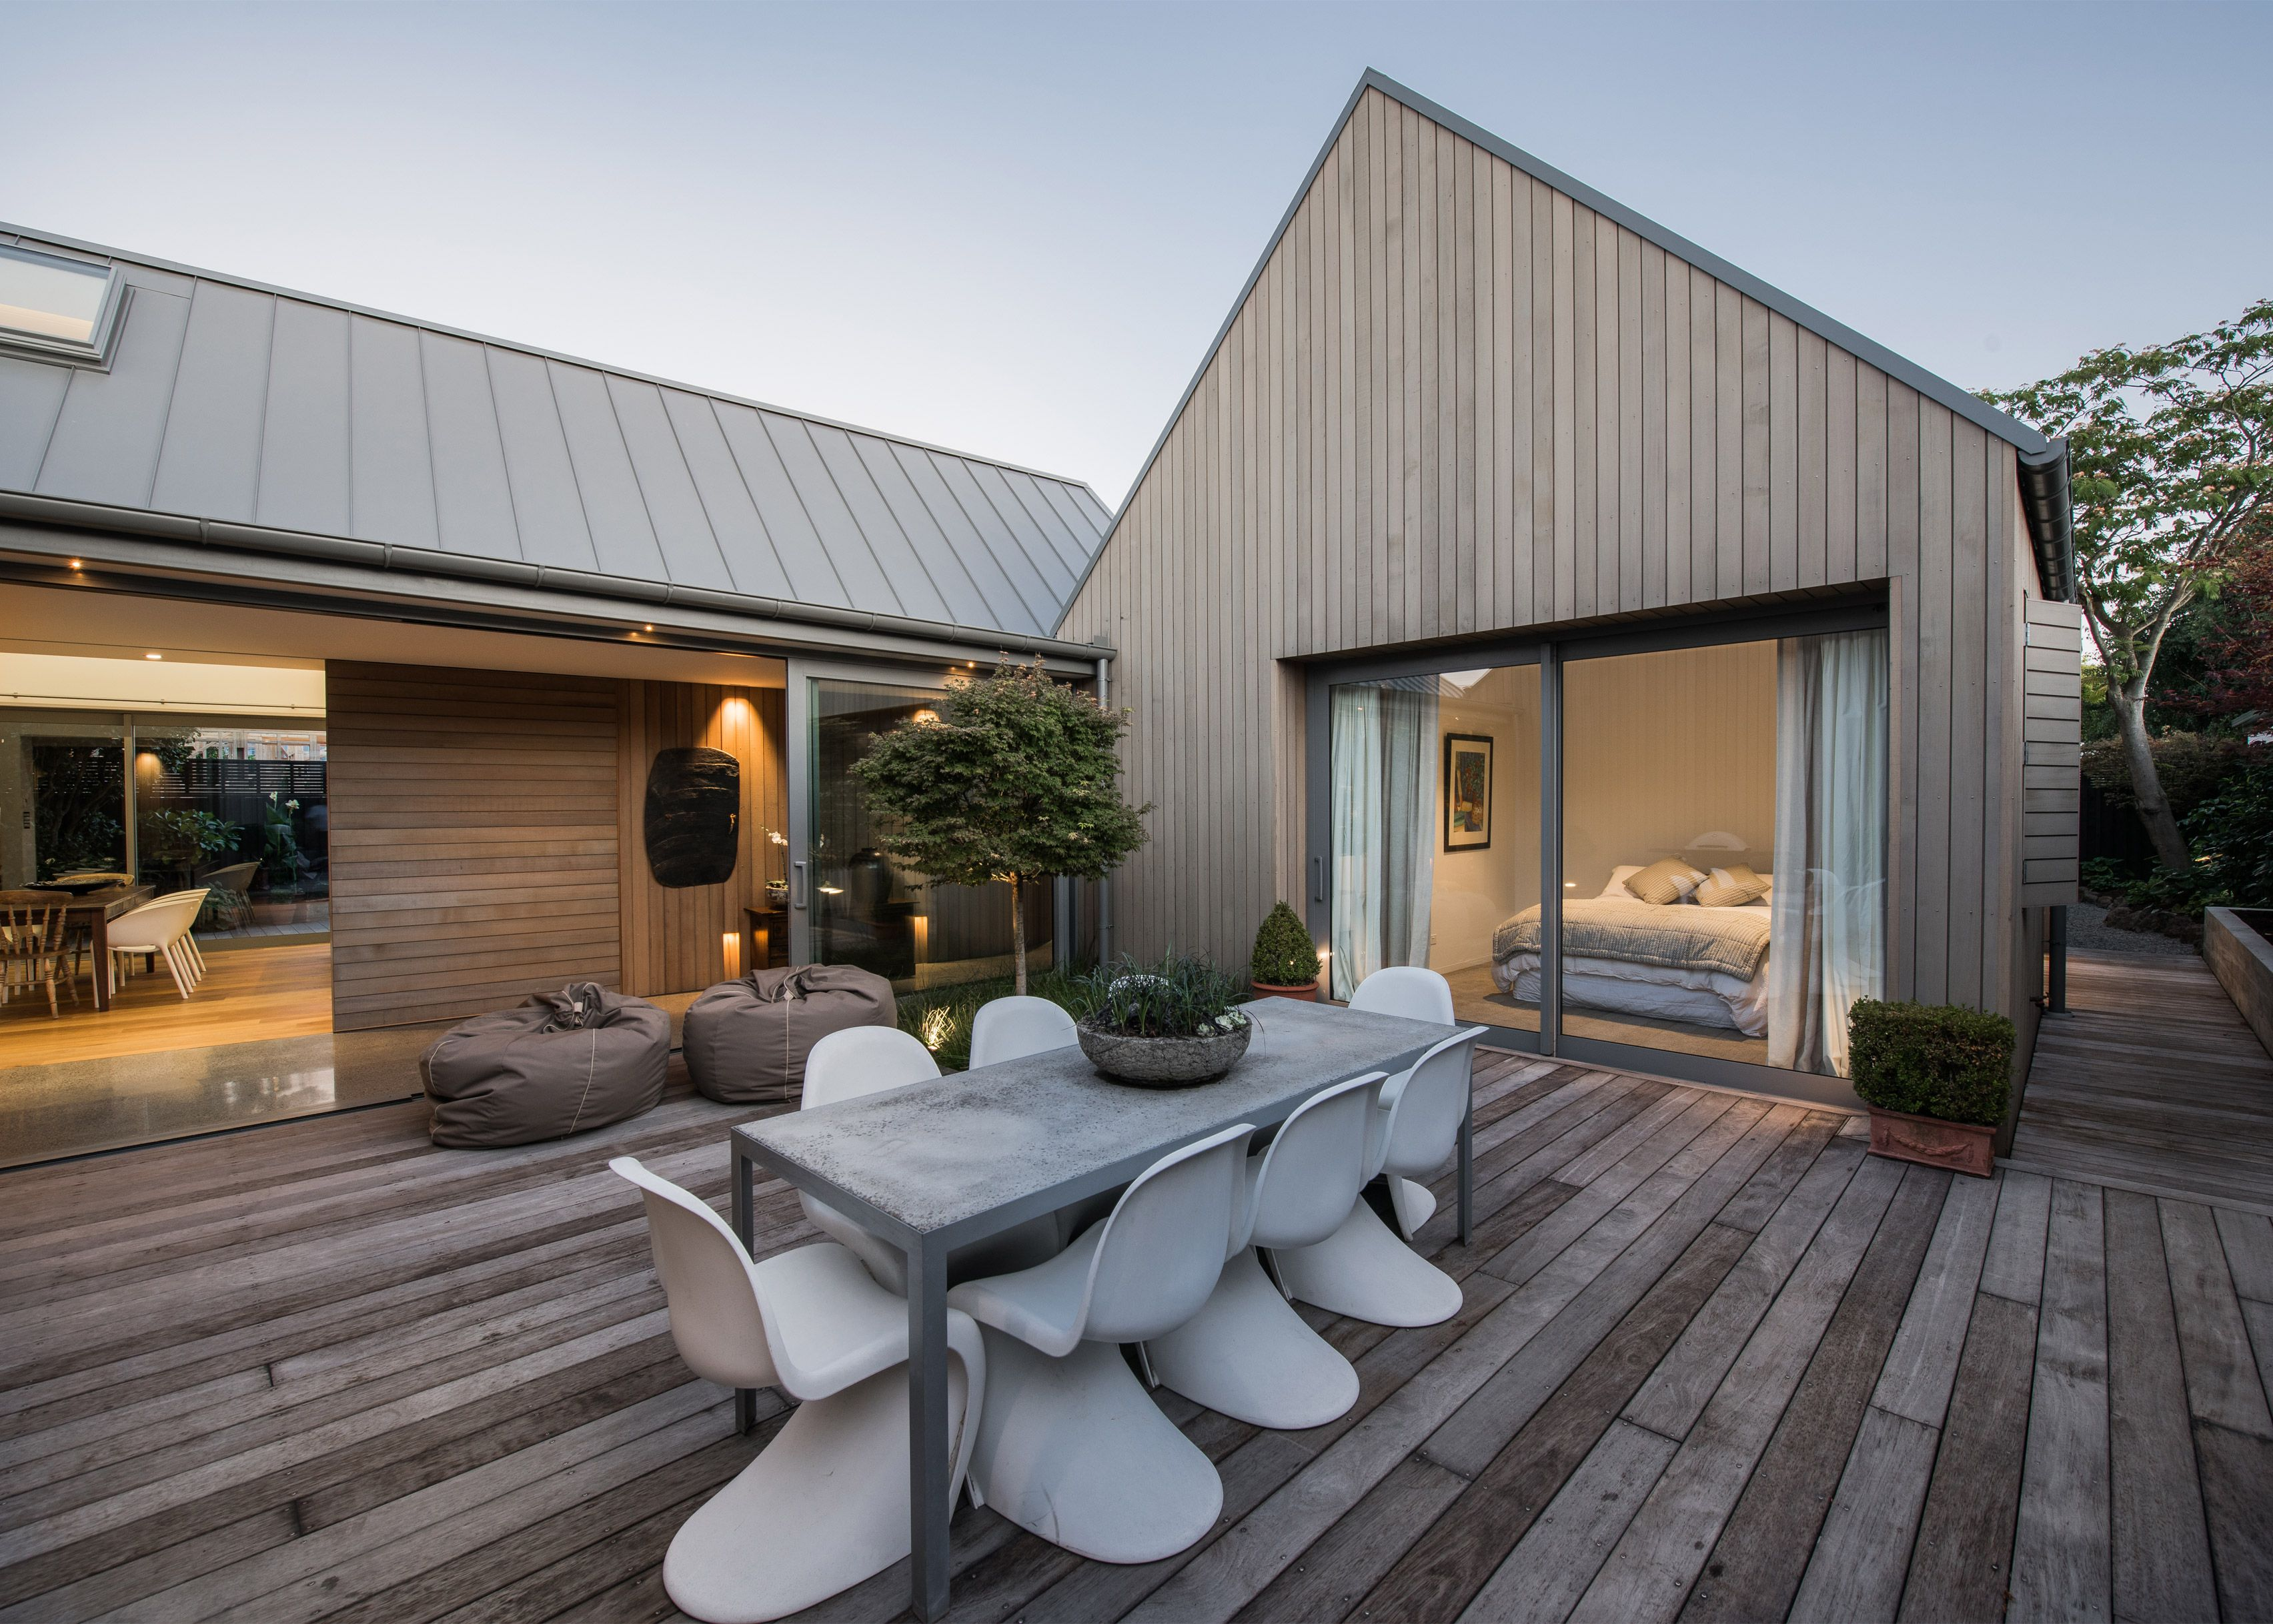 House in Christchurch by Case Ornsby | Haus mit Holzfassade ...